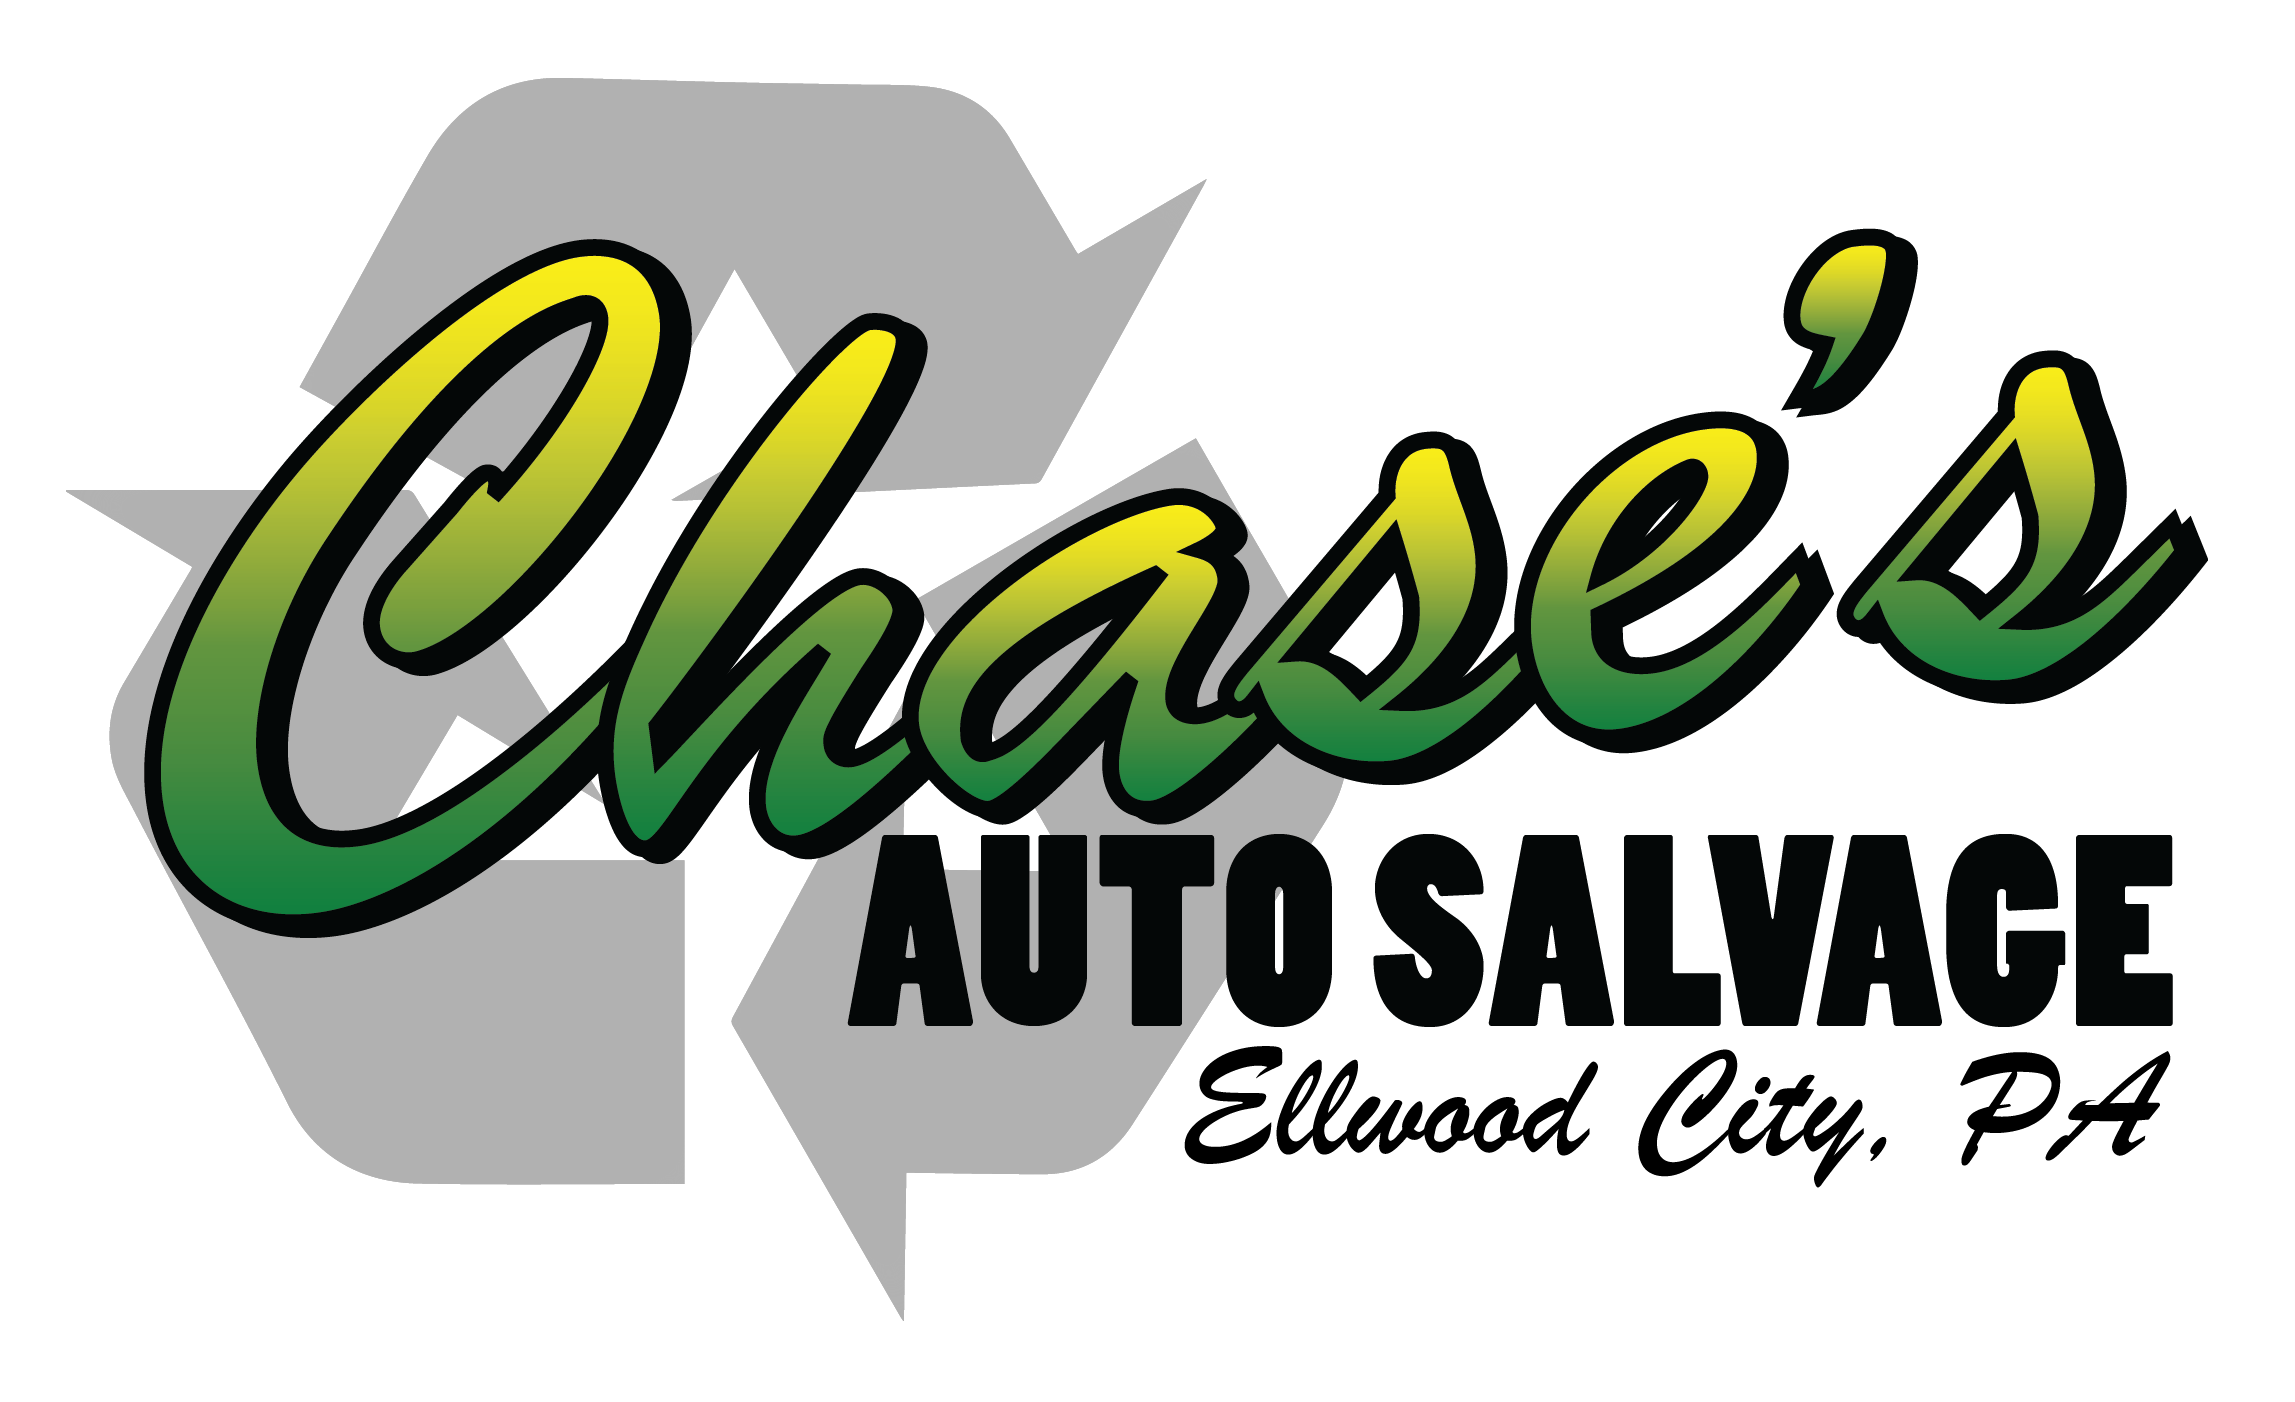 chases_auto_salvage_logo